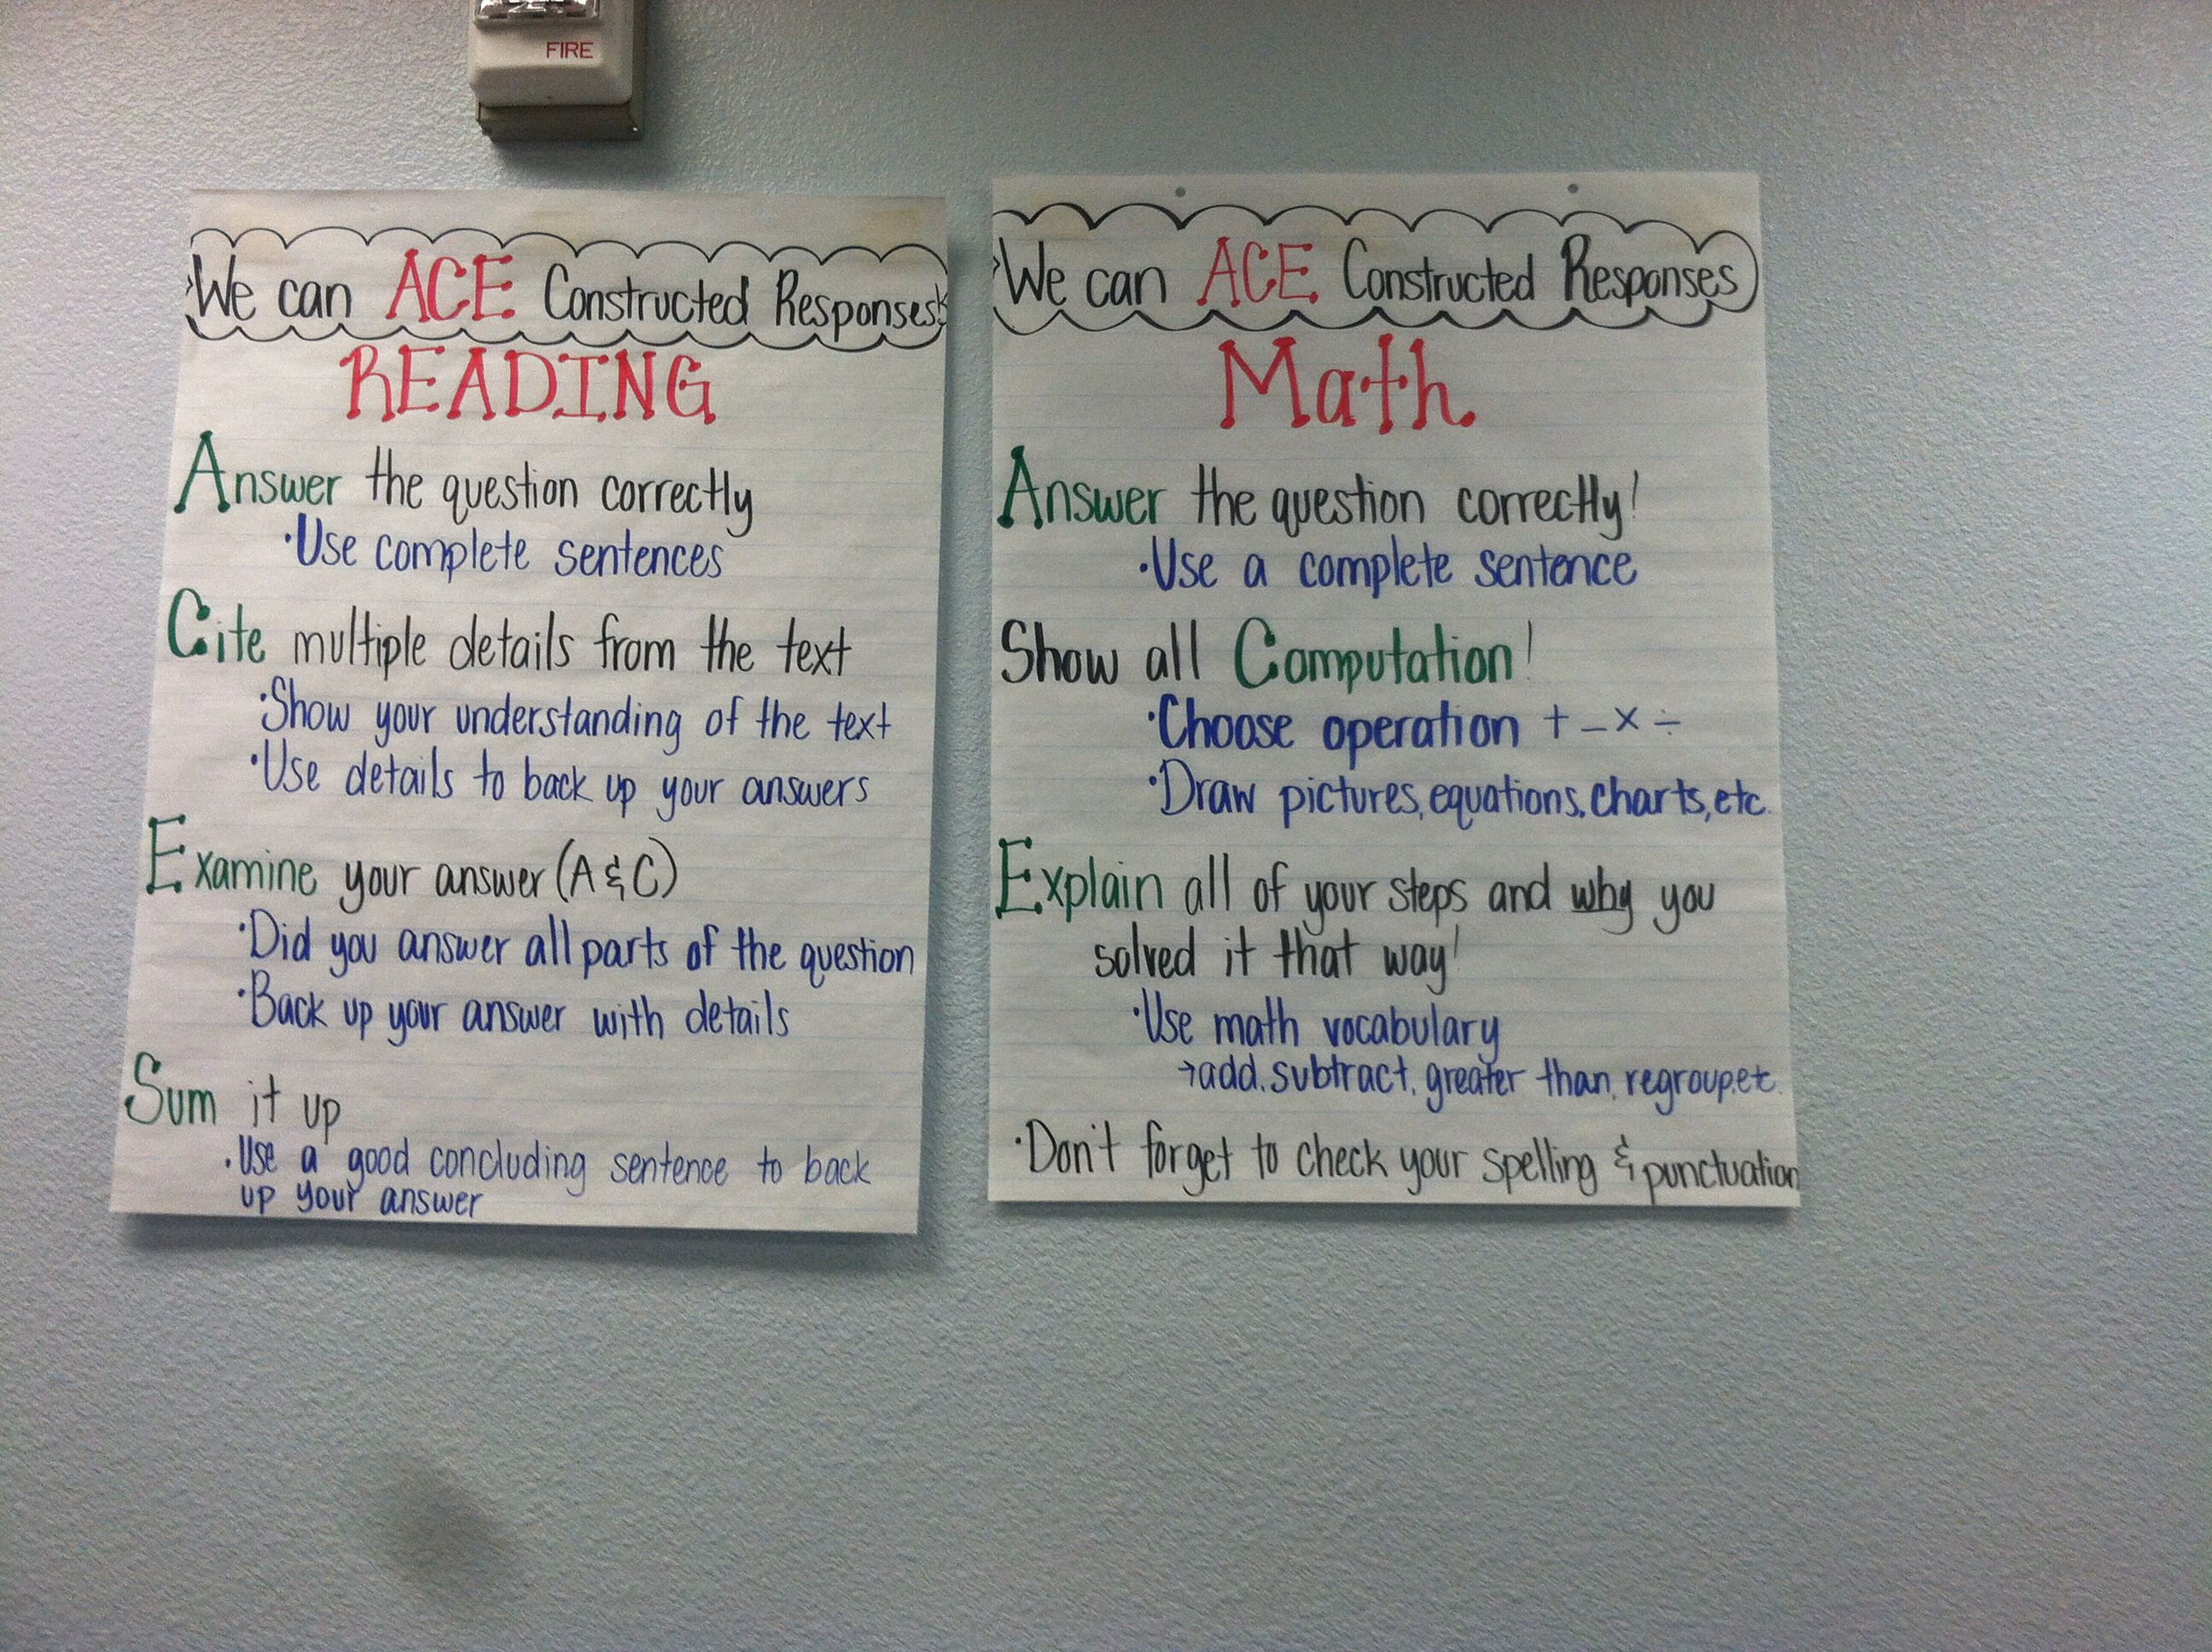 Aces Constructed Responses For Math And Reading